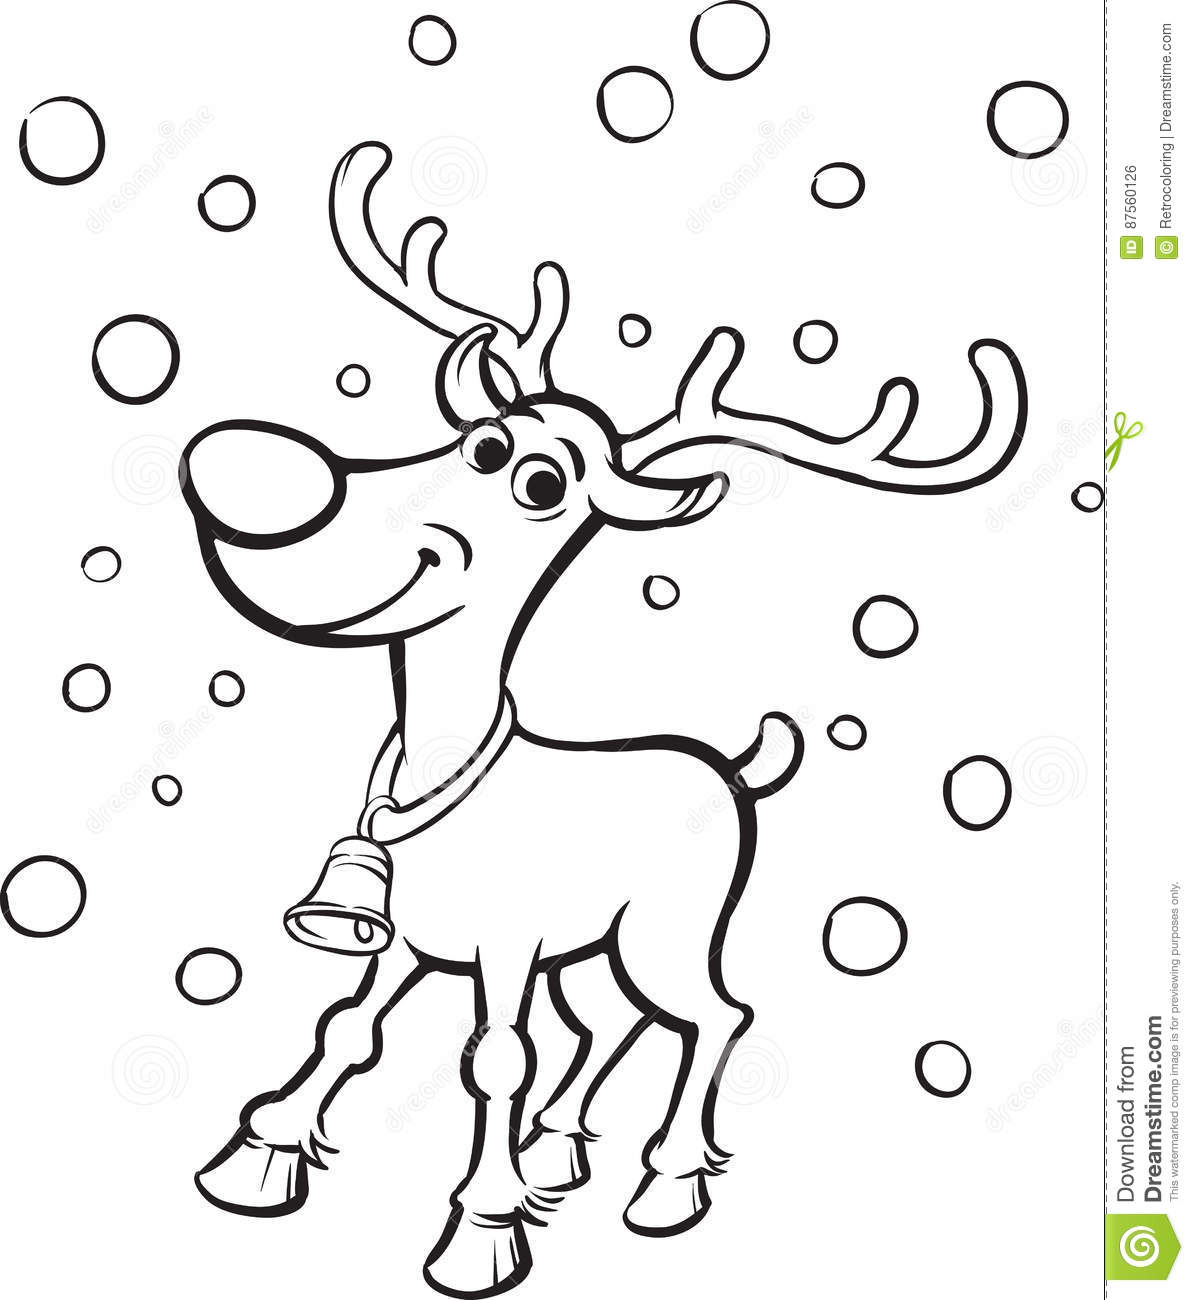 Coloring Book Rudolph The Red Nosed Reindeer Stock Vector